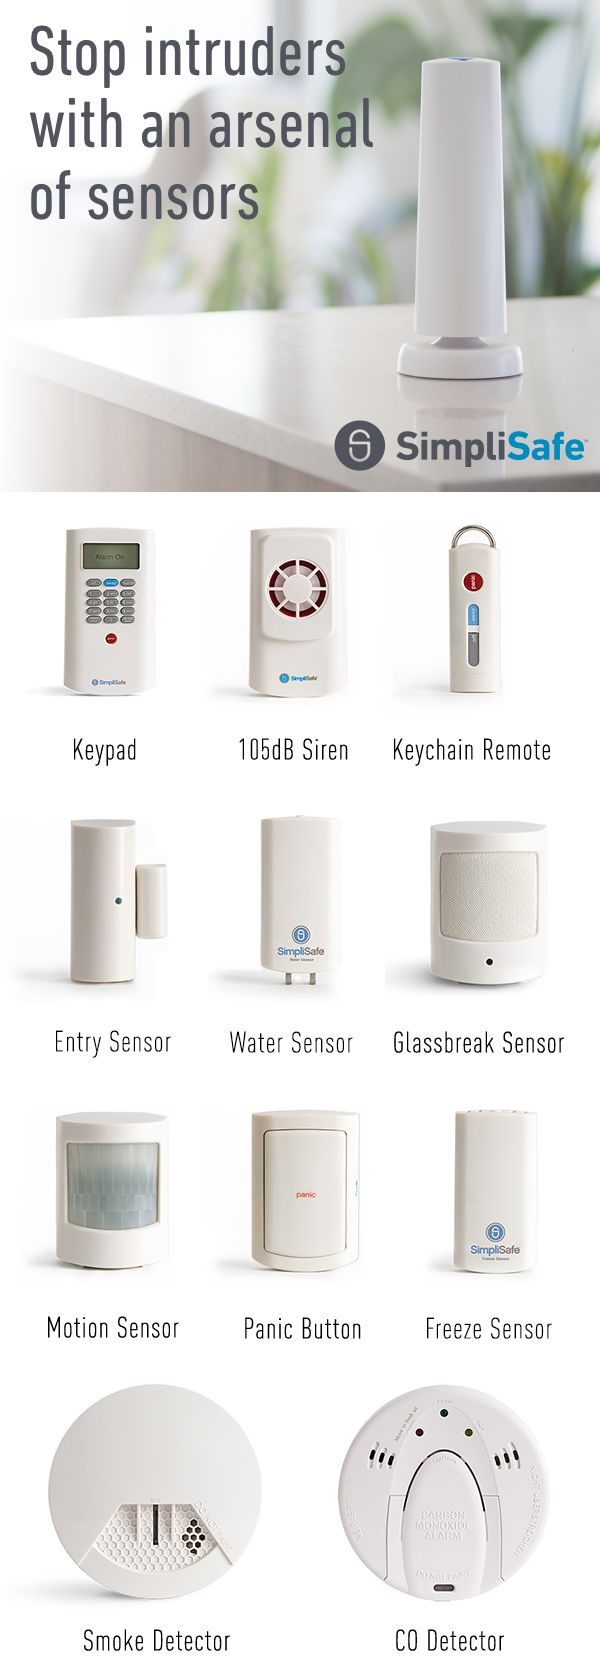 When you choose SimpliSafe, you get customized, professionally-monitored home security shipped straight to your door. Just $15/mo, with no long-term contracts. It's security that fits your life, your needs, and your style. Call or click to find out more.